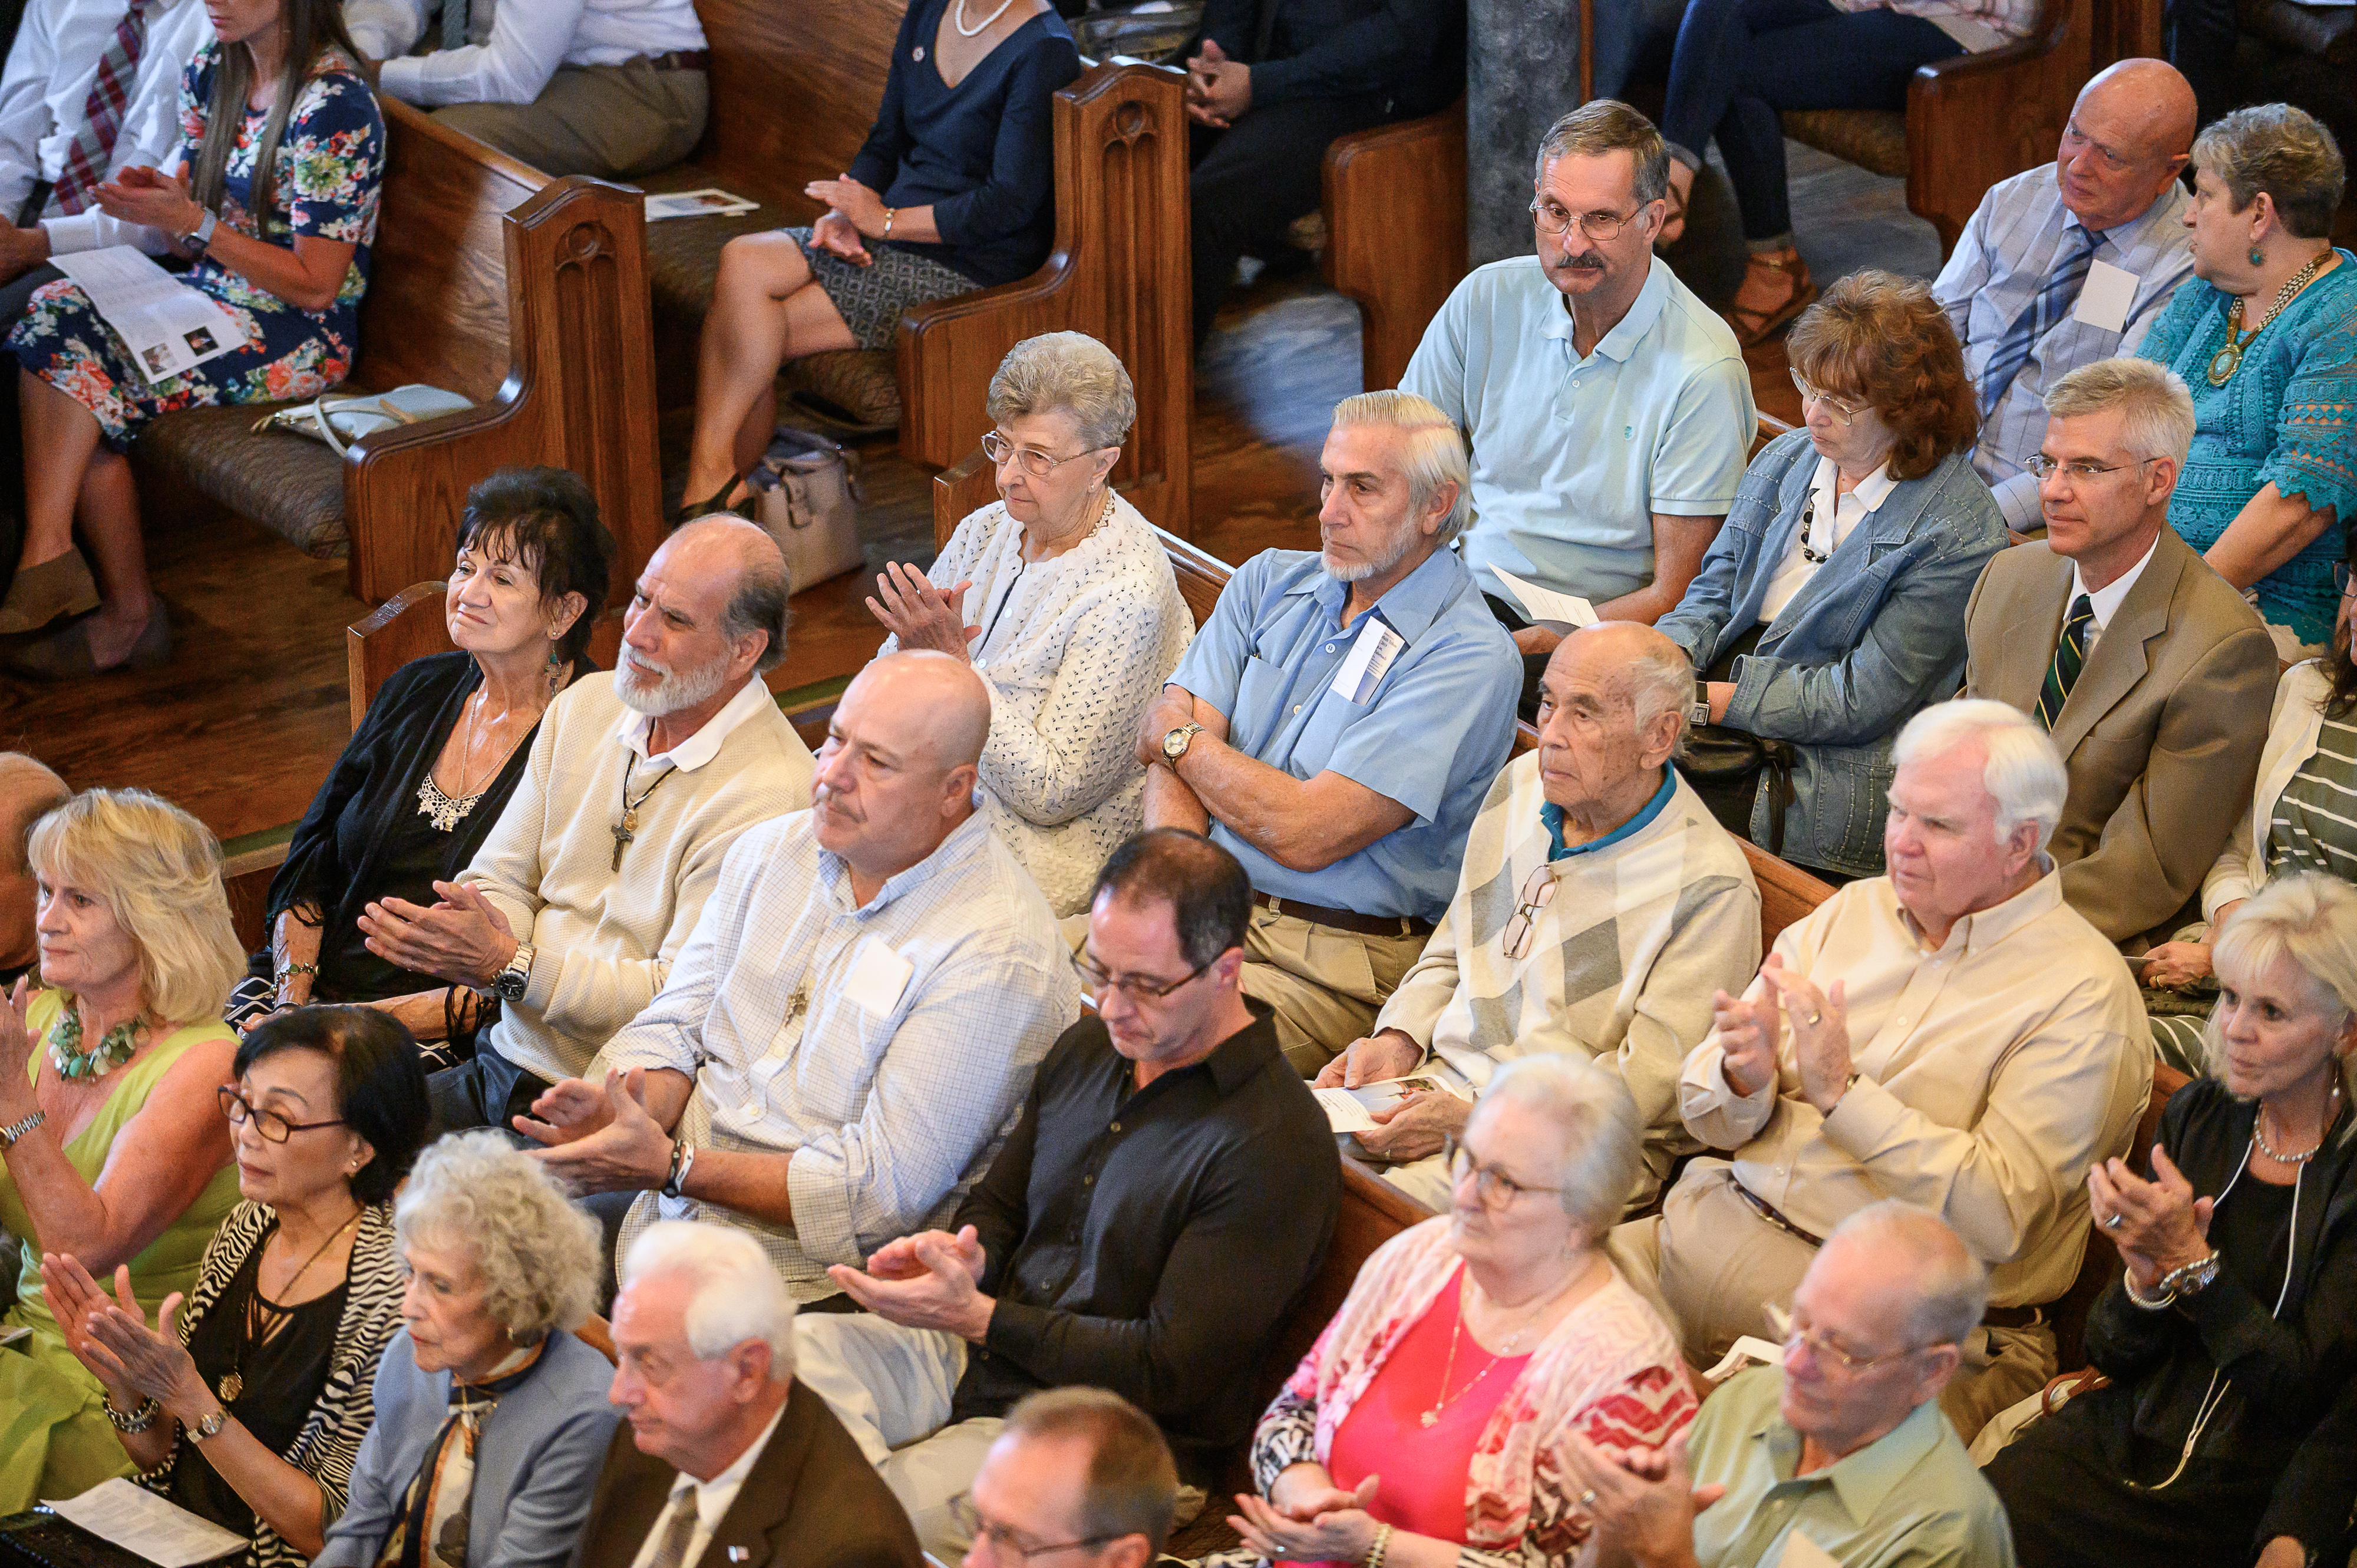 Attendees applaud Bishop Oscar A. Solis' remarks at the Historic Interfaith Tribute at the St. George Tabernacle in St. George, Utah on Thursday, May 2, 2019.